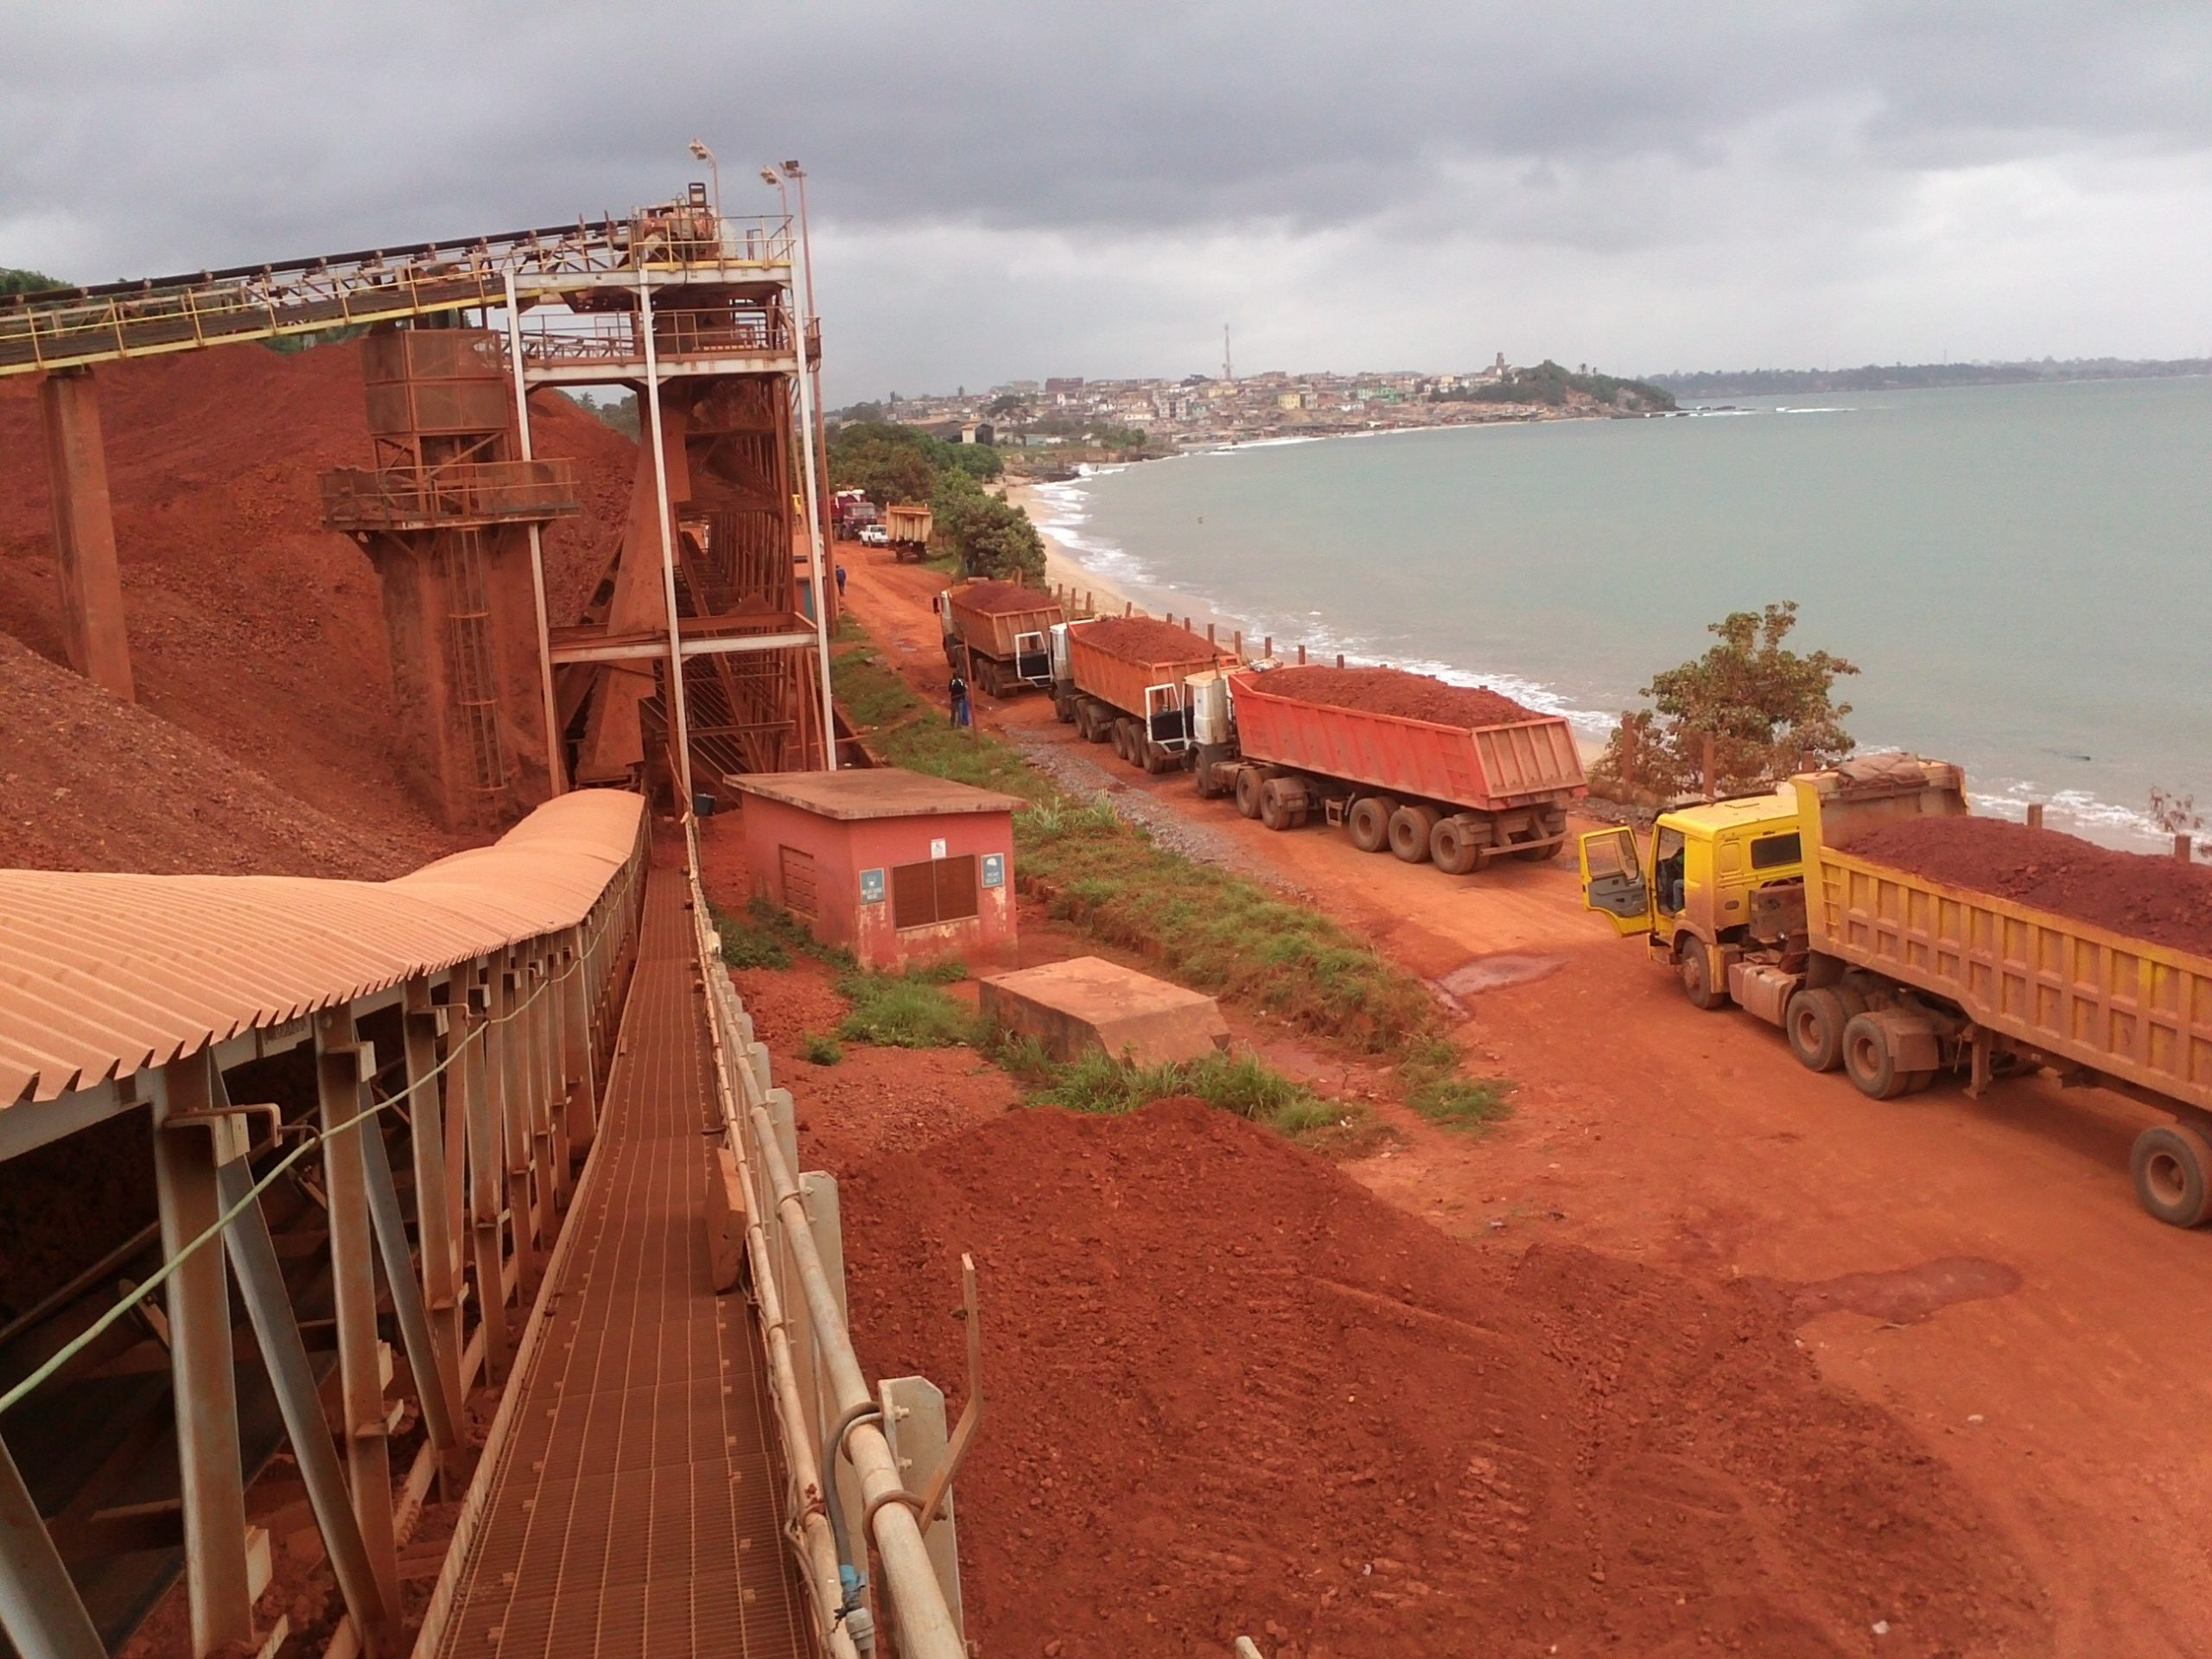 Ghana Signs $1.2 billion deal to develop its bauxite resources